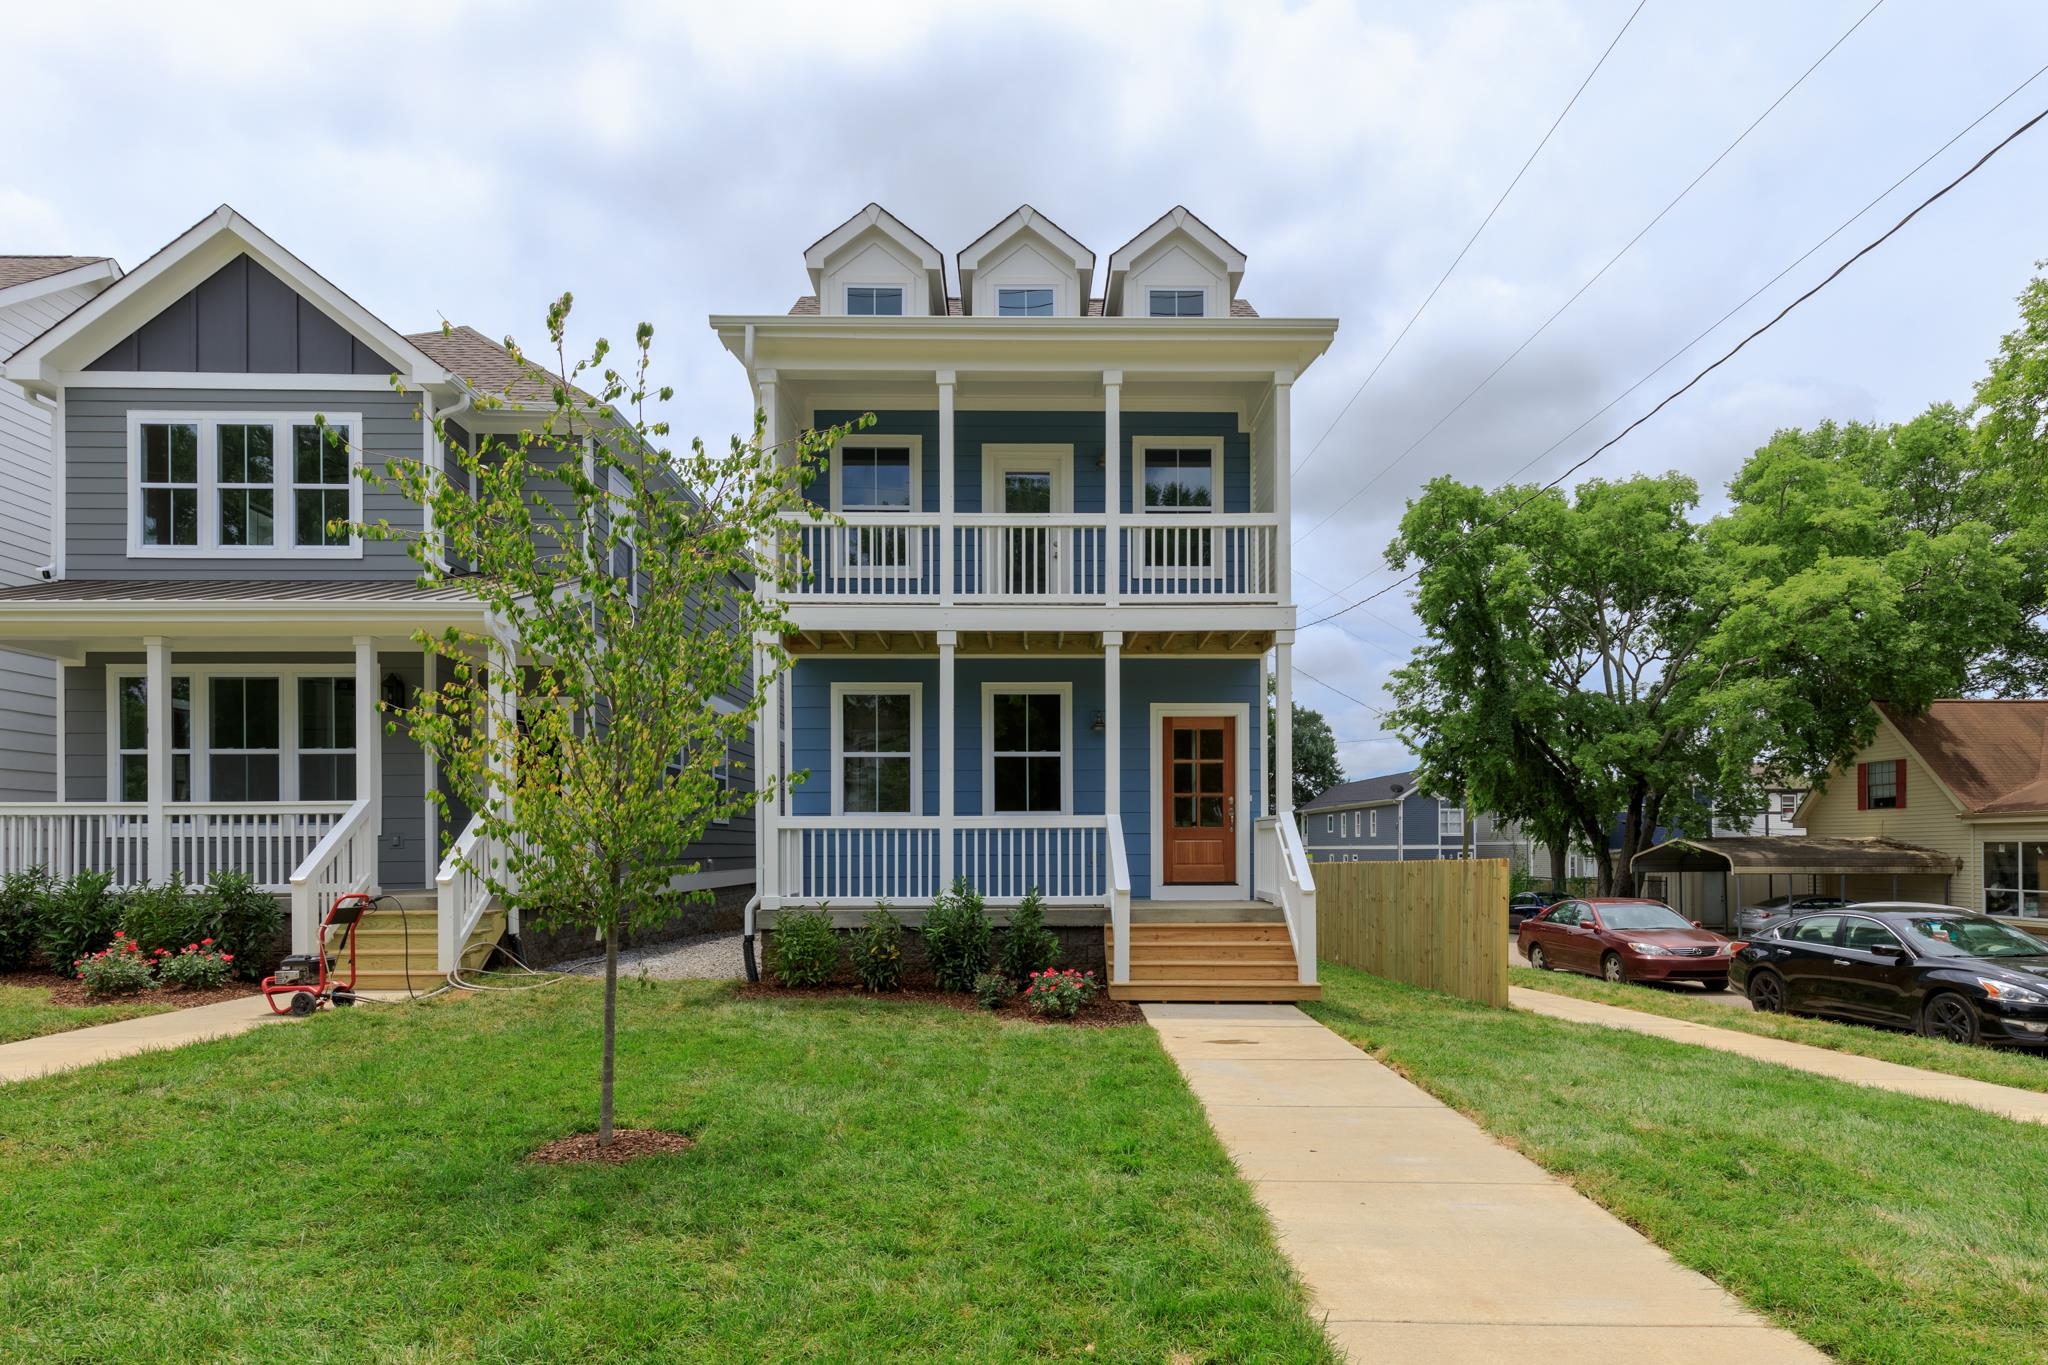 5208 Kentucky Ave, Nashville, TN 37209